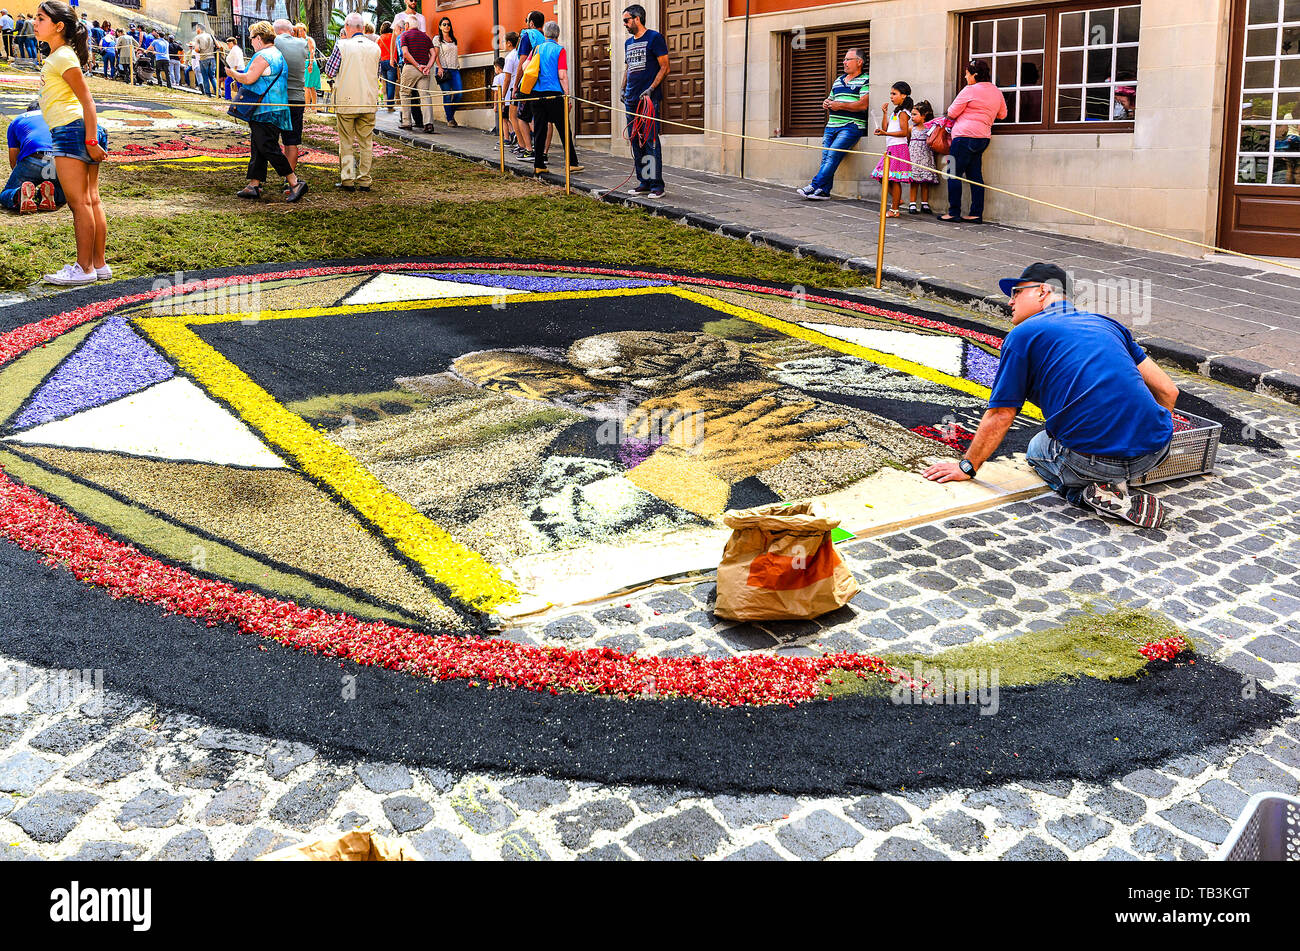 2016/06/15, La Orotava, Spain. During the celebration, carpets made of flower blossoms and salt with various motifs are made on the streets of the cit Stock Photo